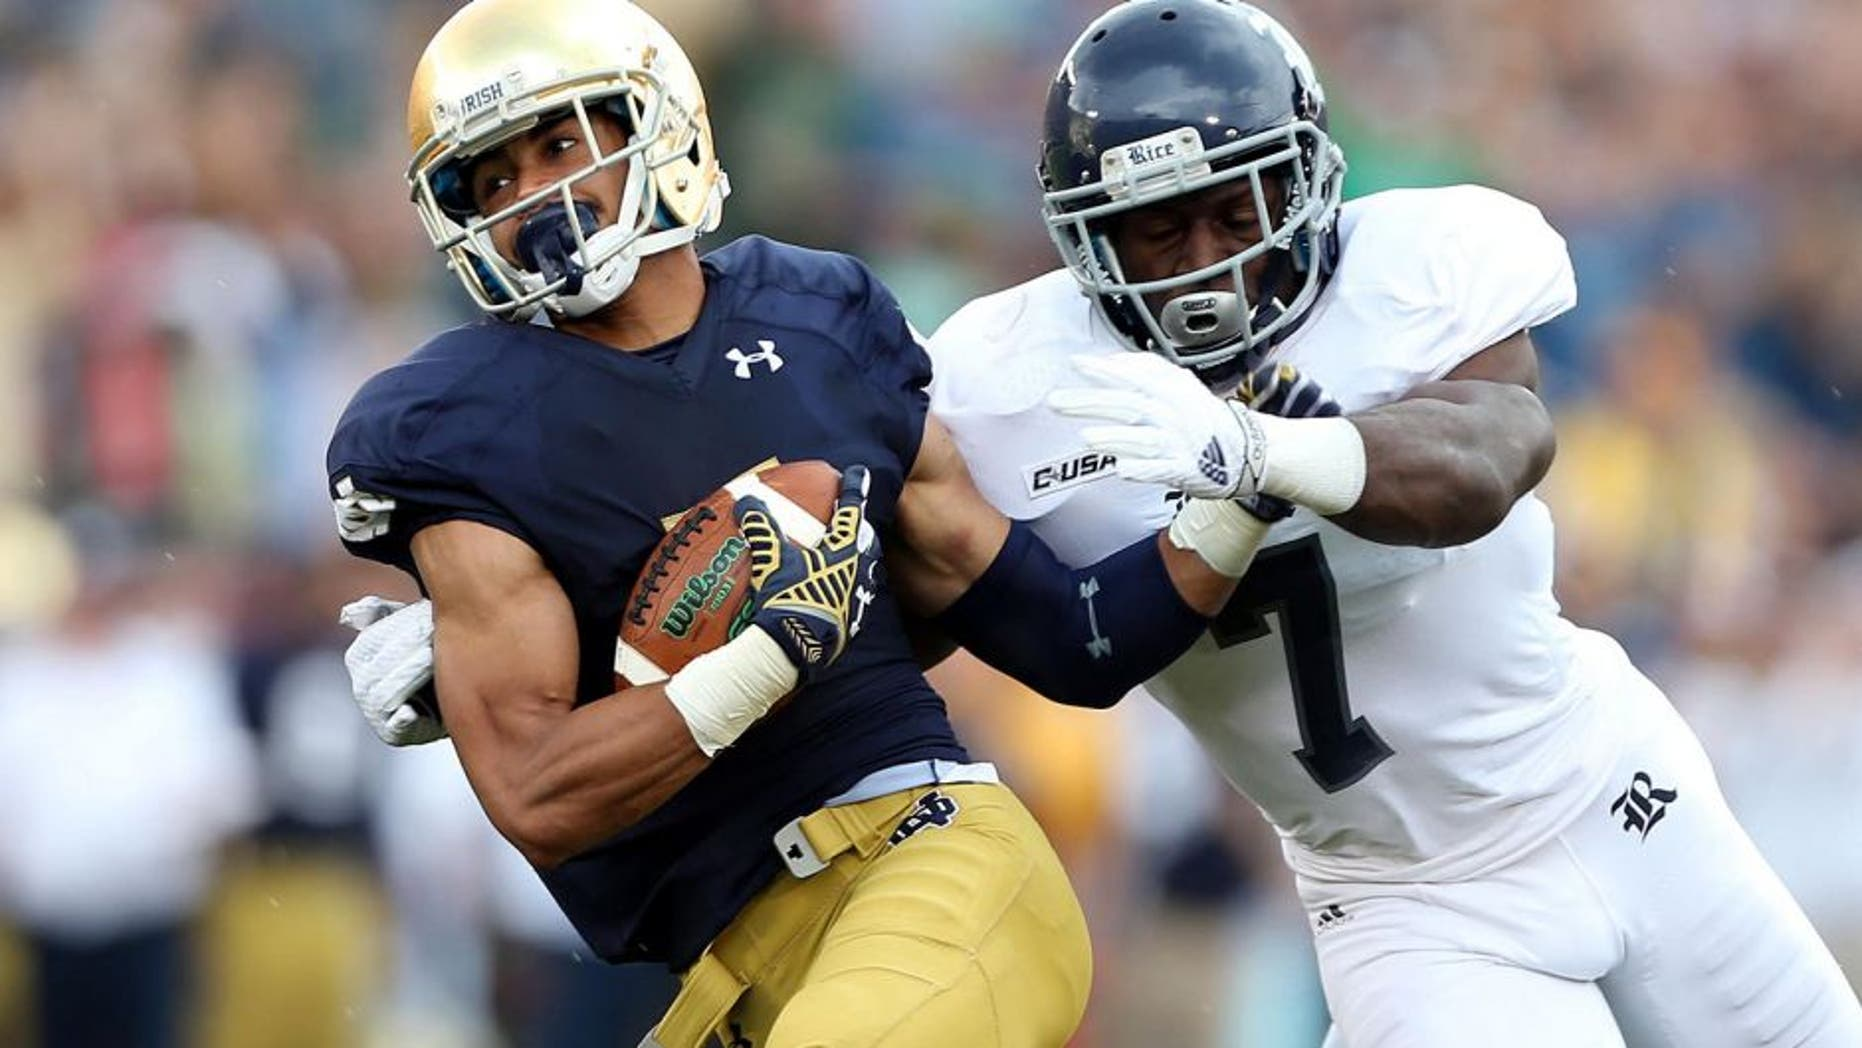 Aug 30, 2014; South Bend, IN, USA; Notre Dame Fighting Irish wide receiver Will Fuller (7) catches a pass for a 75 yard touchdown against Rice Owls safety Julius White (7) at Notre Dame Stadium. Mandatory Credit: Brian Spurlock-USA TODAY Sports